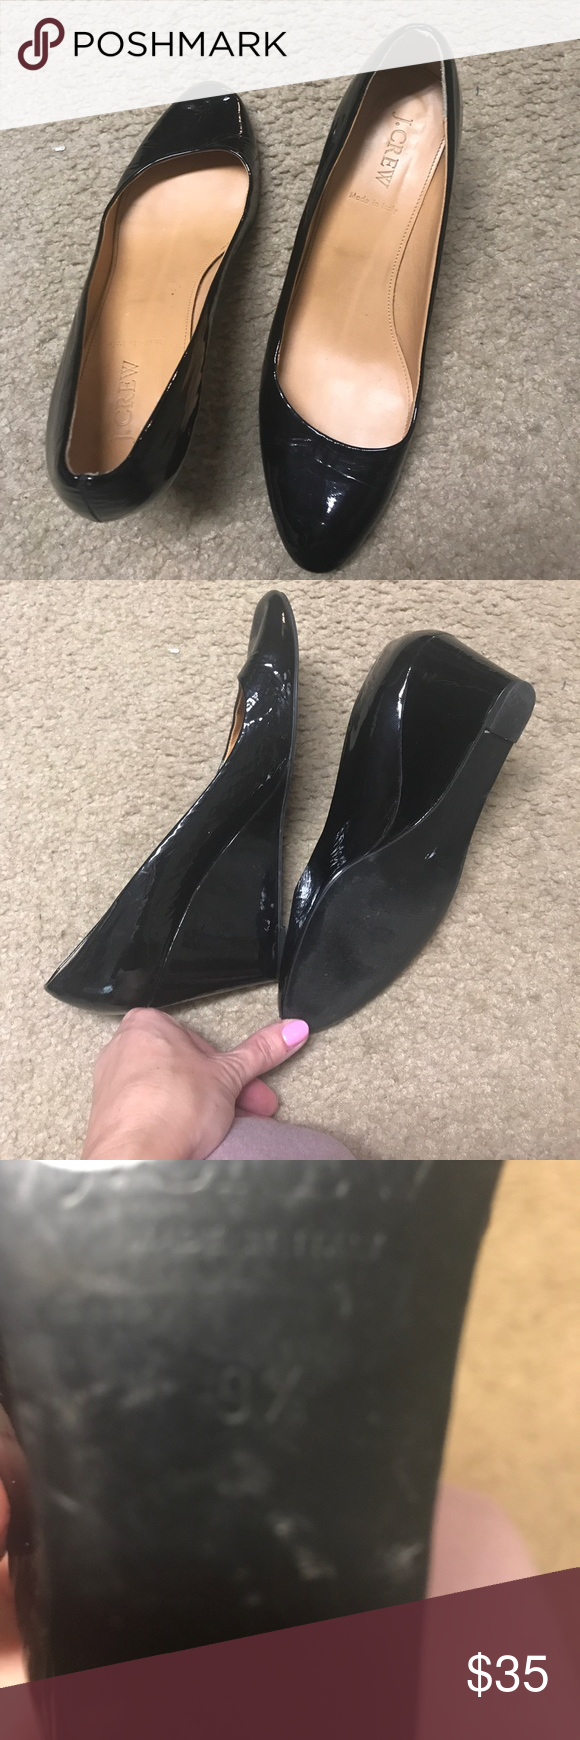 J crew wedge black patent leather shoes Size 9 1/2 wedge patent leather shoes. Excellent condition. Barely when. Classic with a dress or jeans. J. Crew Shoes Wedges